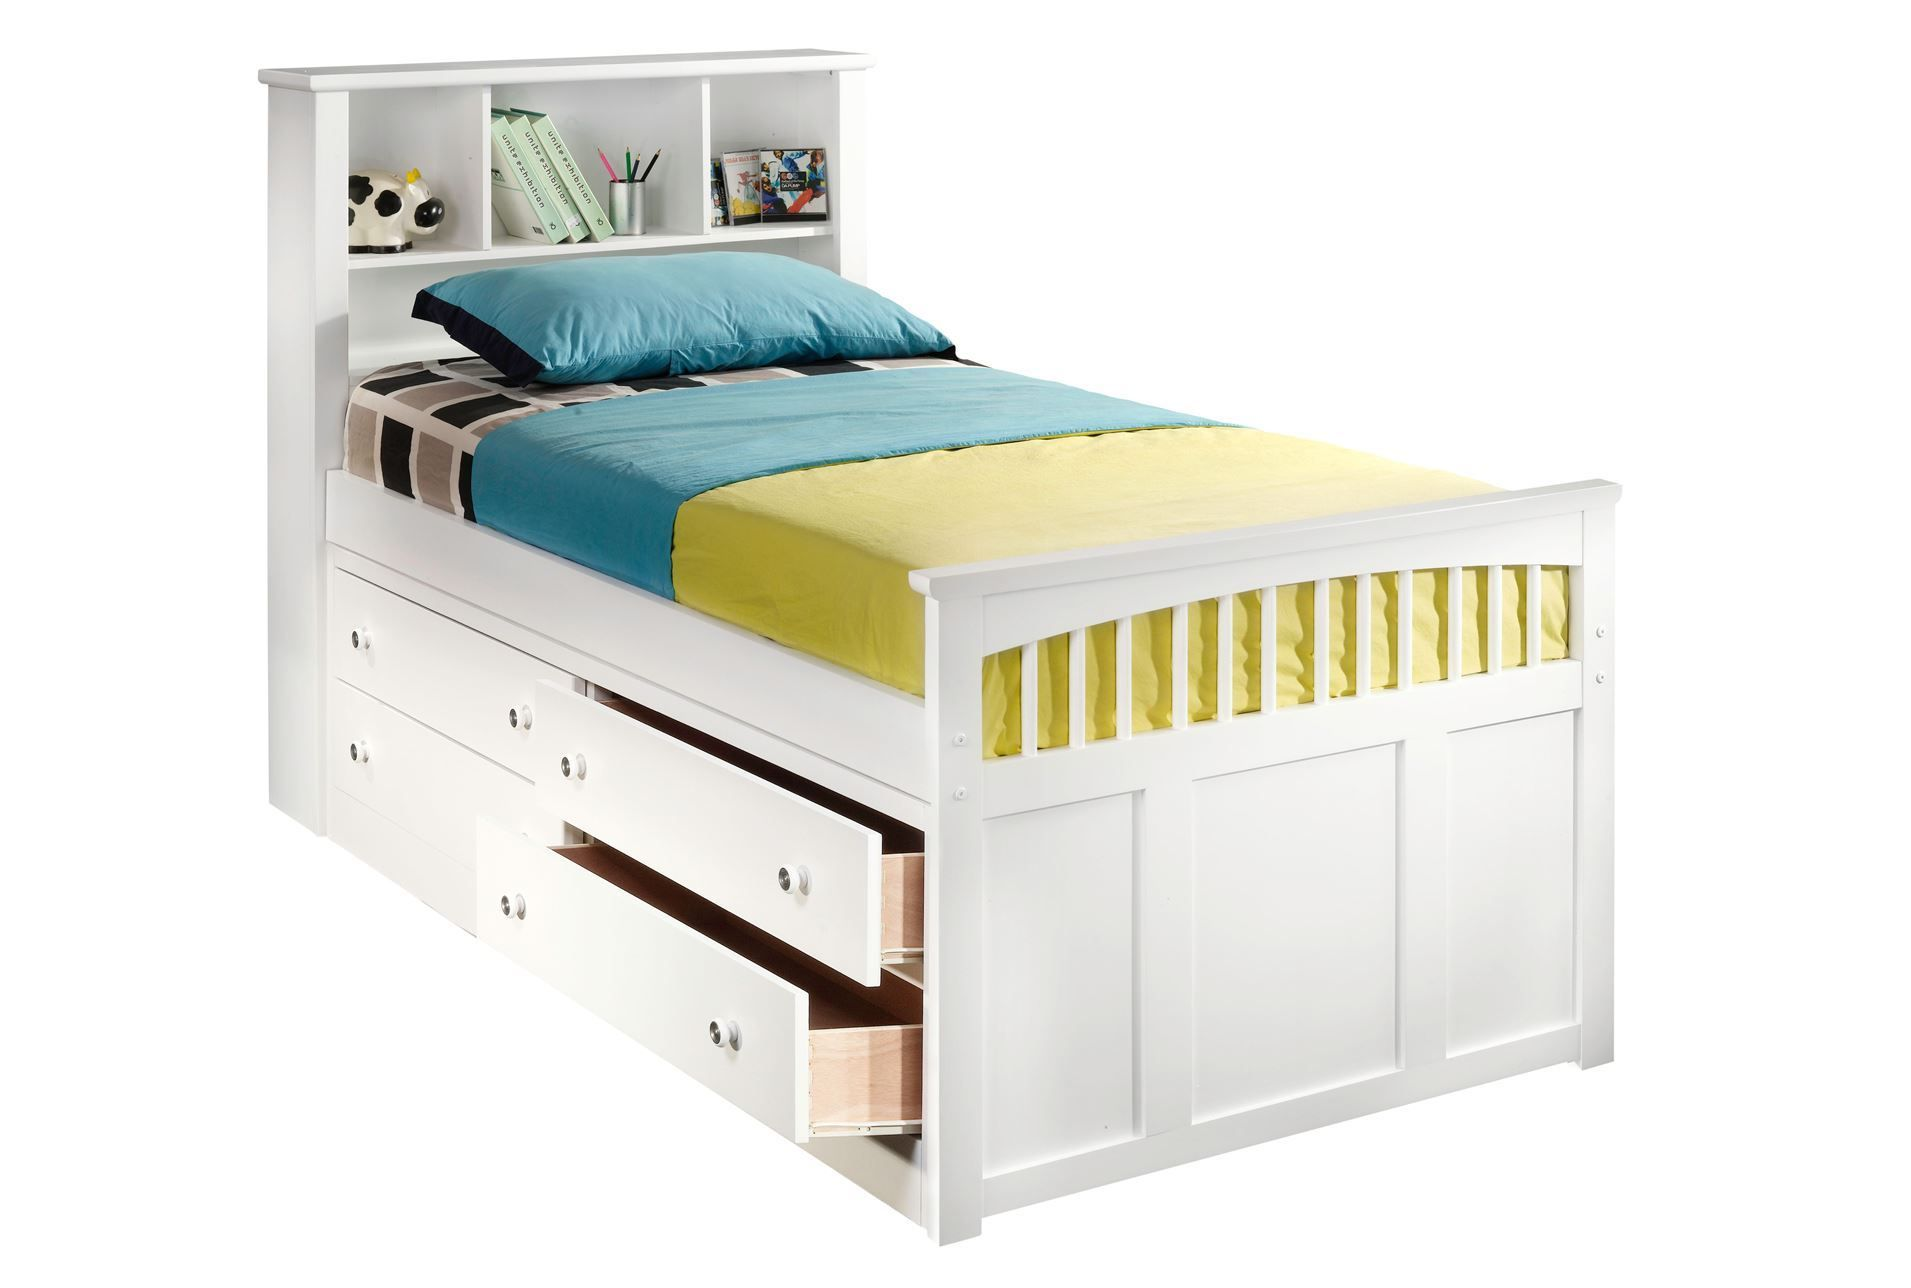 bedroom white size queen modern frame king bed beds ikea of with platform underneath drawers twin storage large full